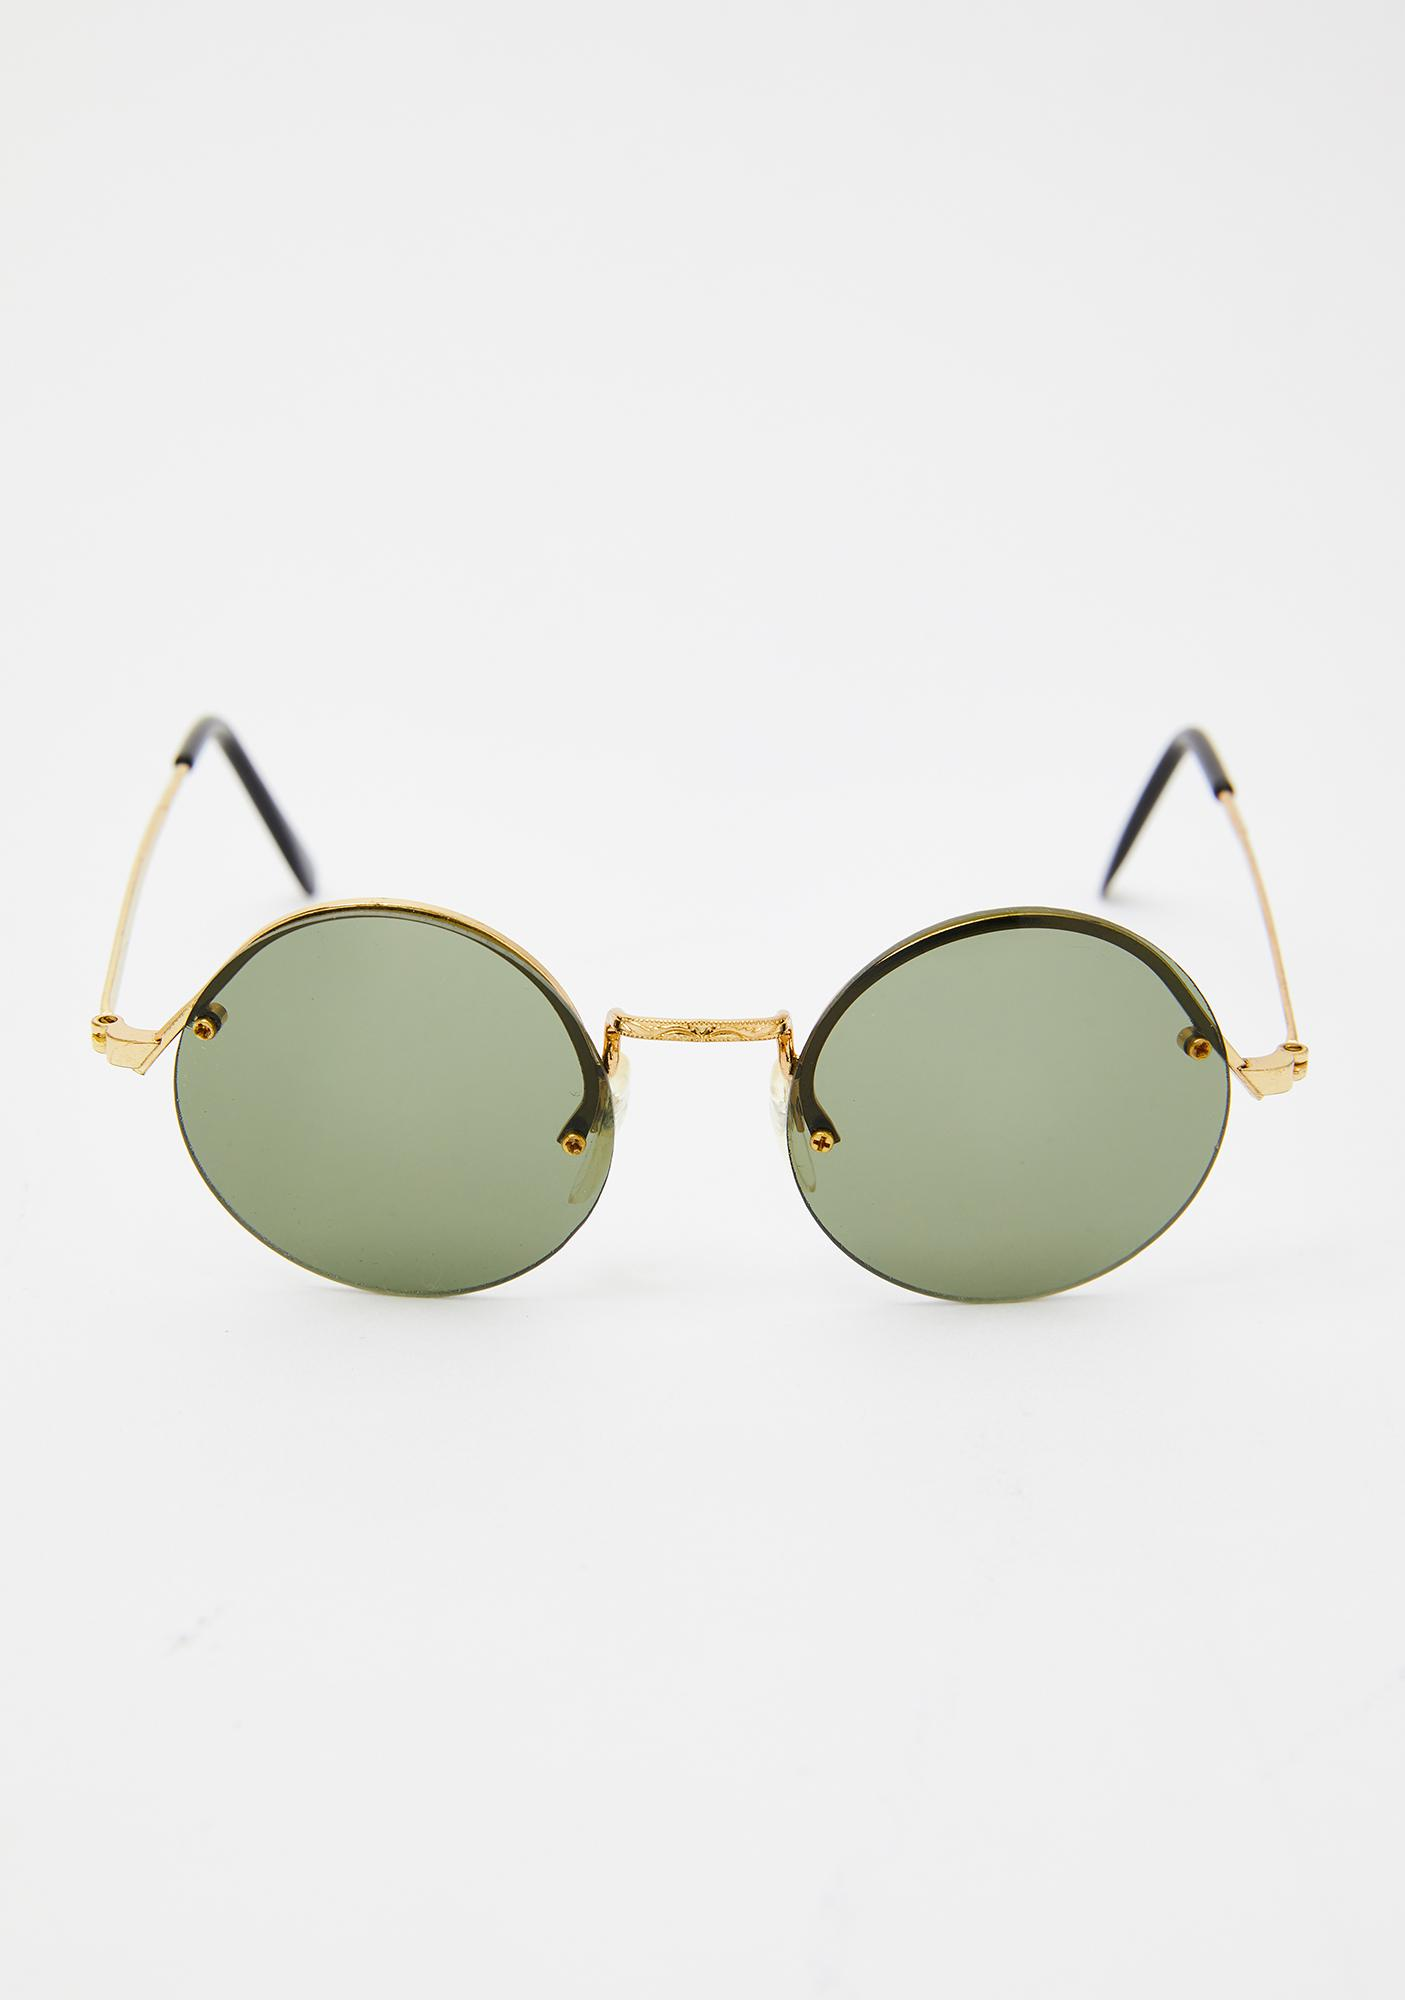 Replay Vintage Sunglasses Green Rounders Sunglasses